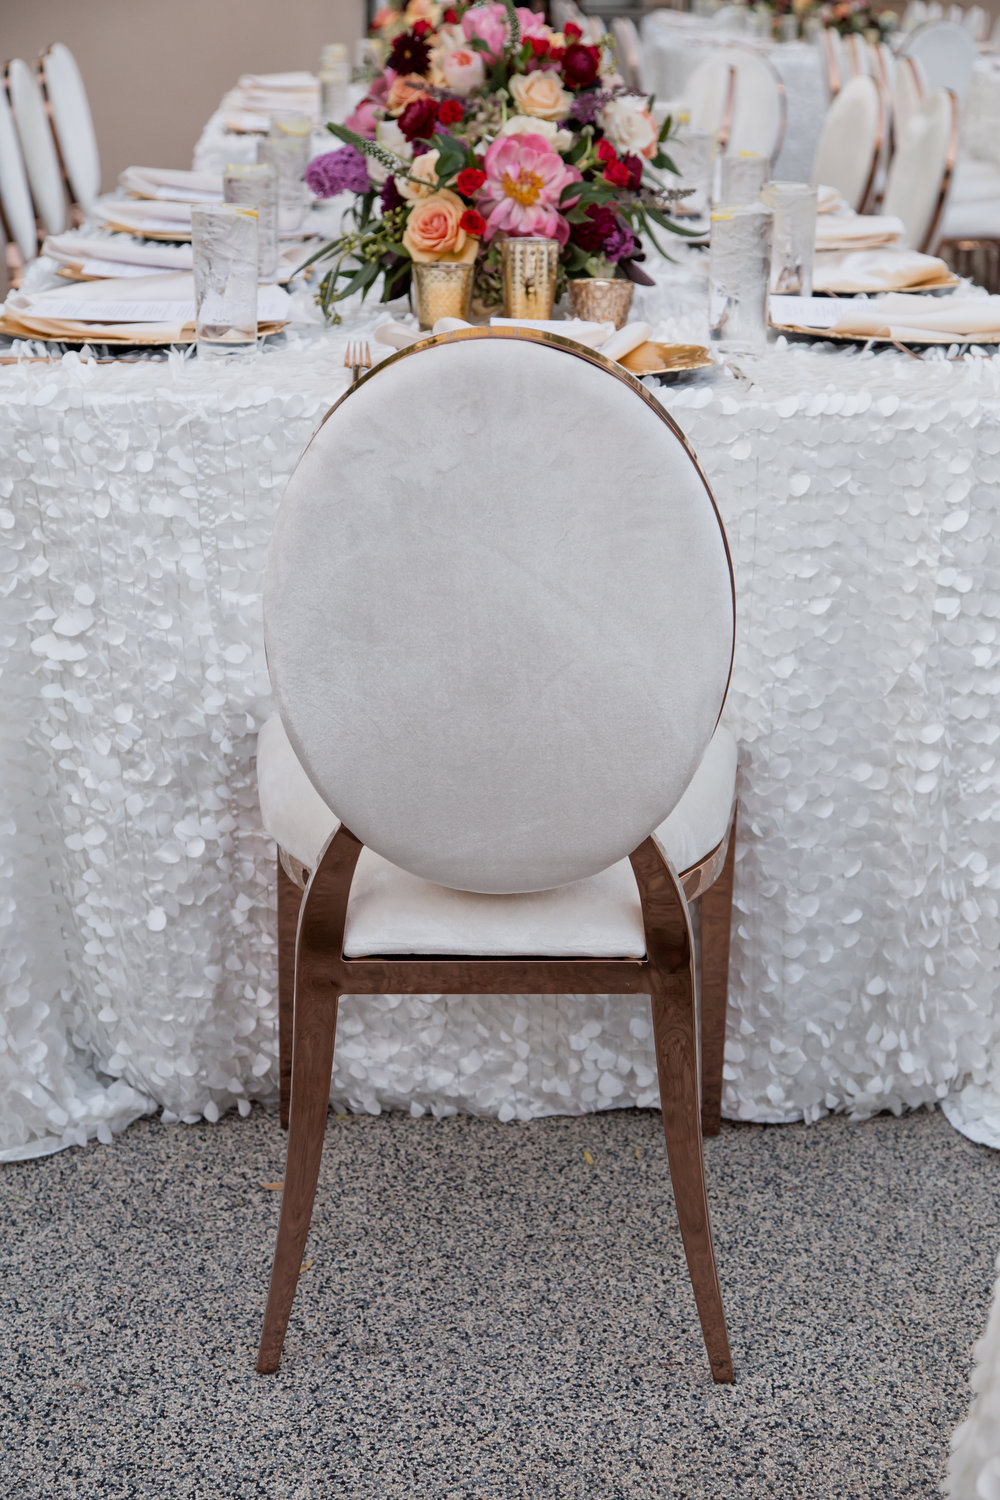 White and gold luxe wedding chair.  Destination Wedding Planner  Andrea Eppolito  · Photos by  Adam Frazier Photography  · Floral and Decor by  Destinations by Design  ·  Lighting by  LED Unplugged  · Venue  · Invitations  Ceci New York   ·  Menus by  Alligator Soup